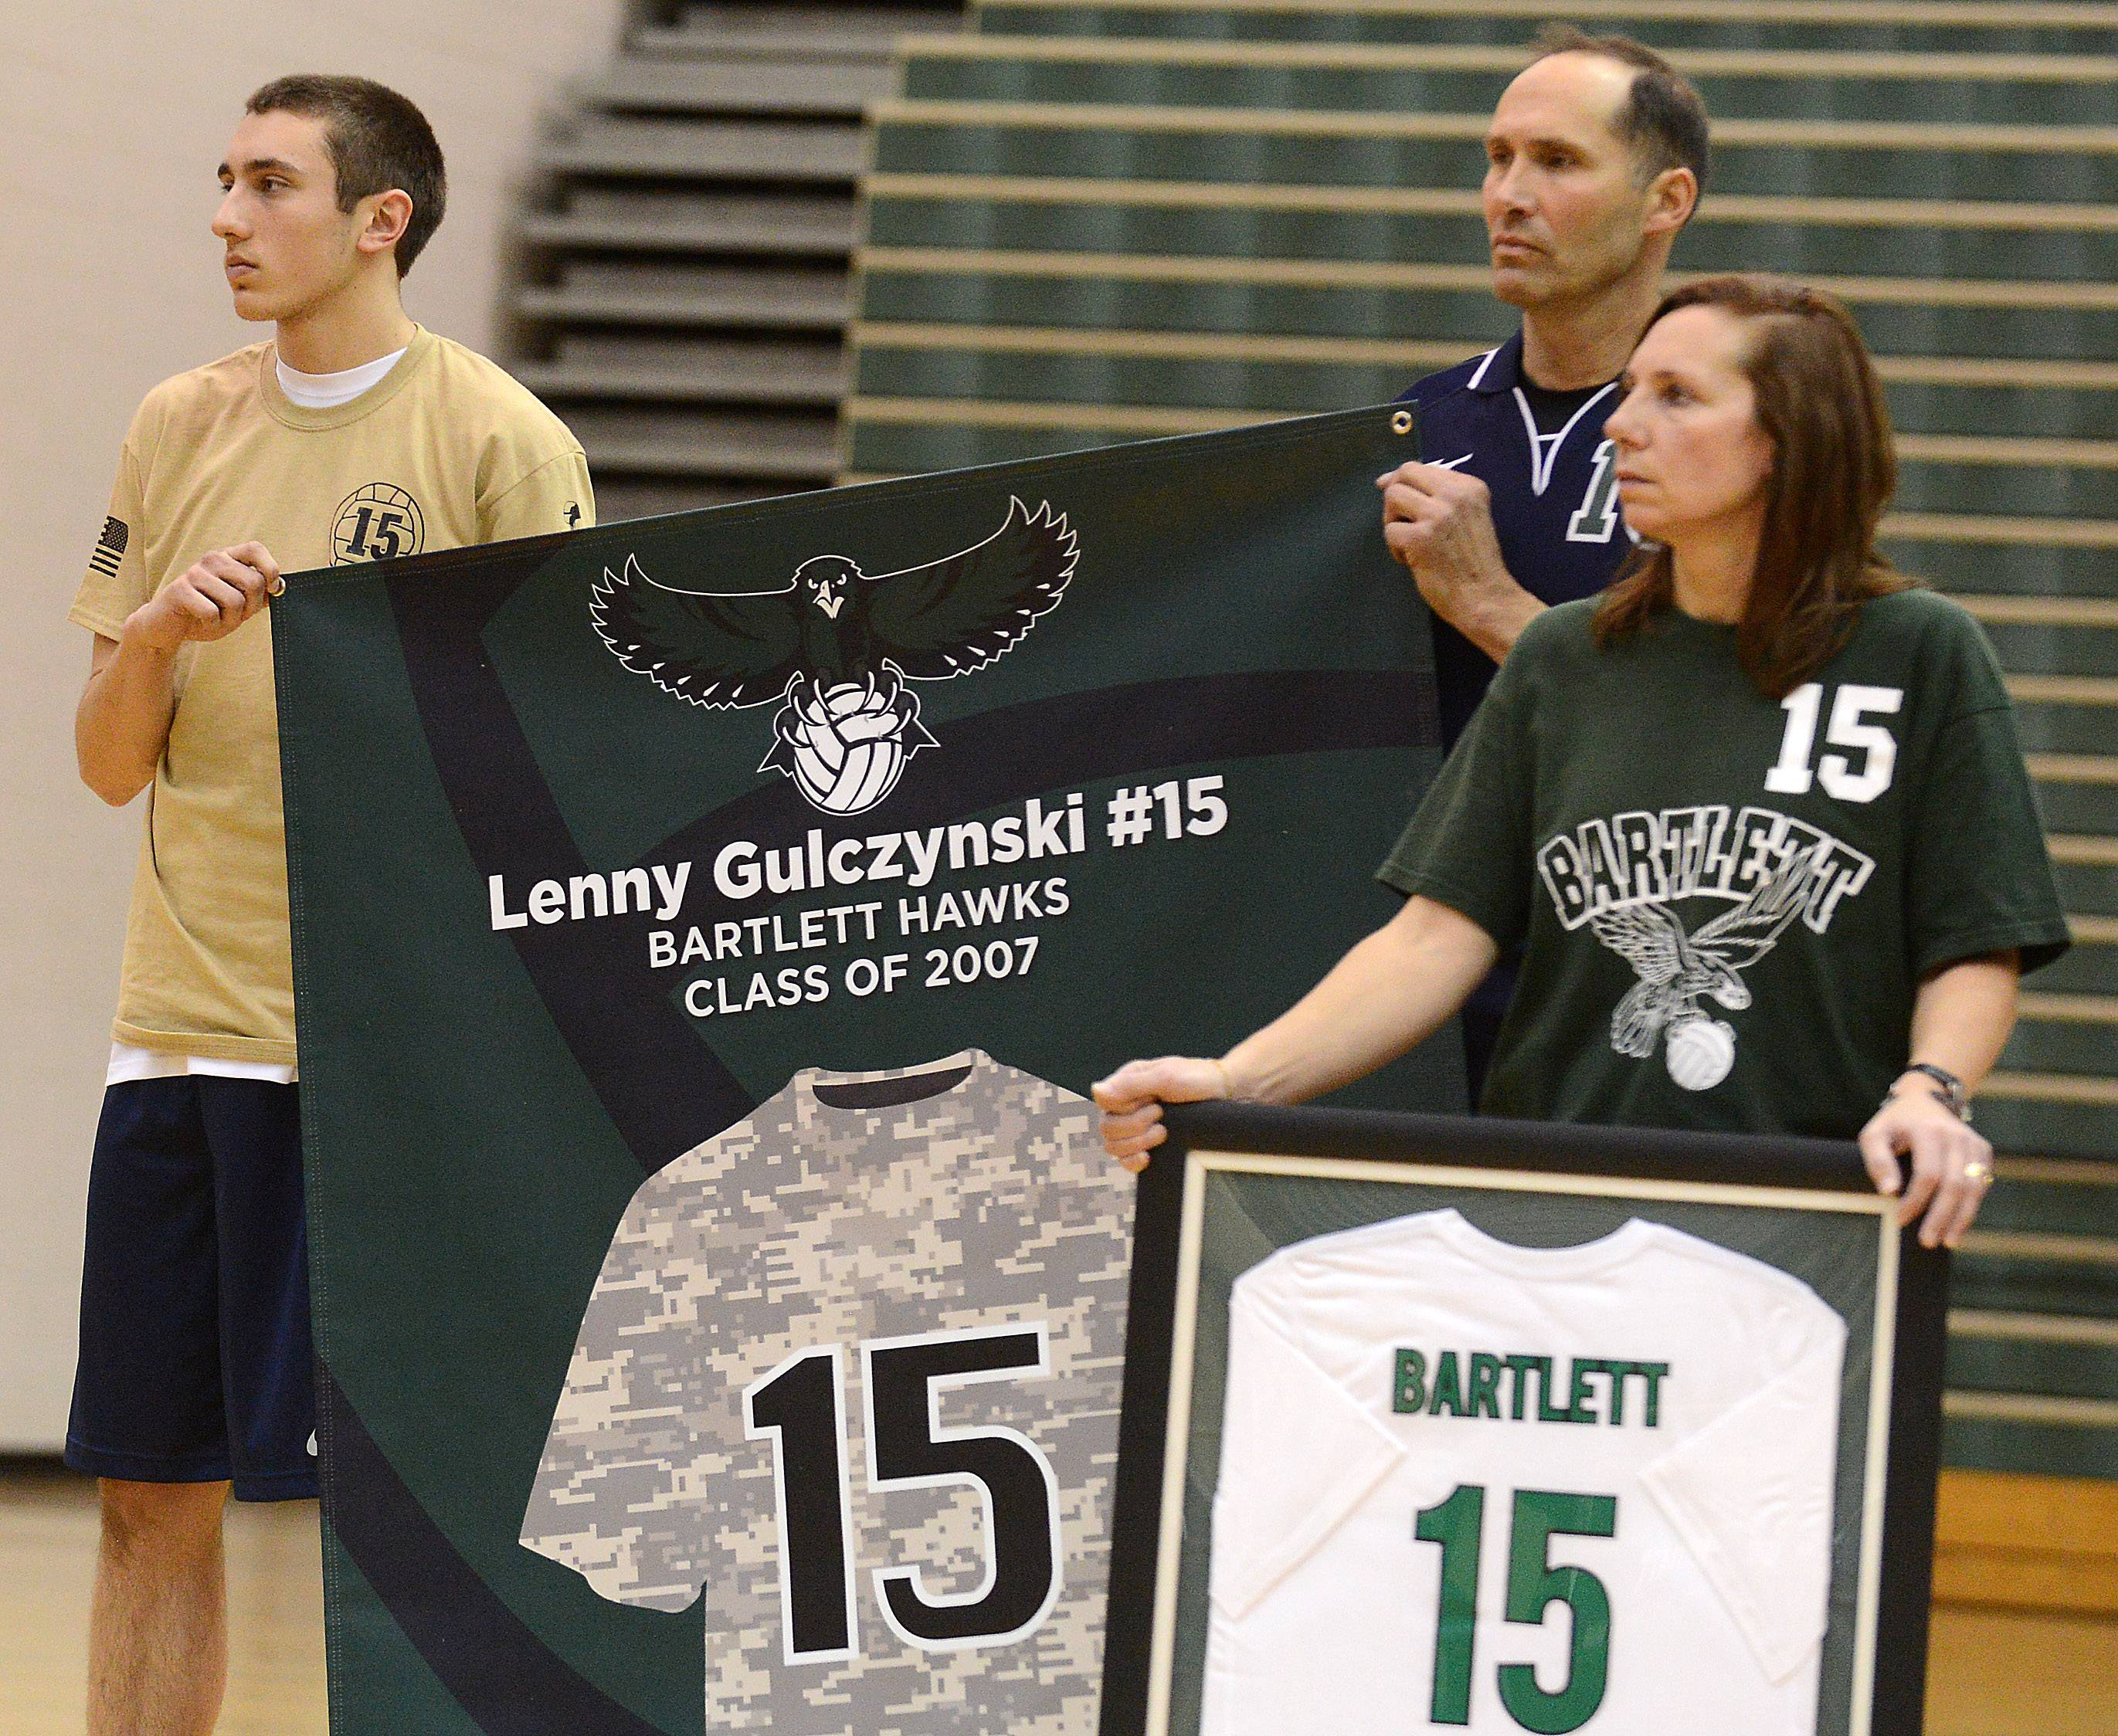 Mike Gulczynski and his parents, Mike Sr., and Jackie, listen as Taps is played during the jersey retirement ceremony for Mike's brother Lenny Thursday at Bartlett High School. Lenny was a 2007 grad who died while serving in Iraq.